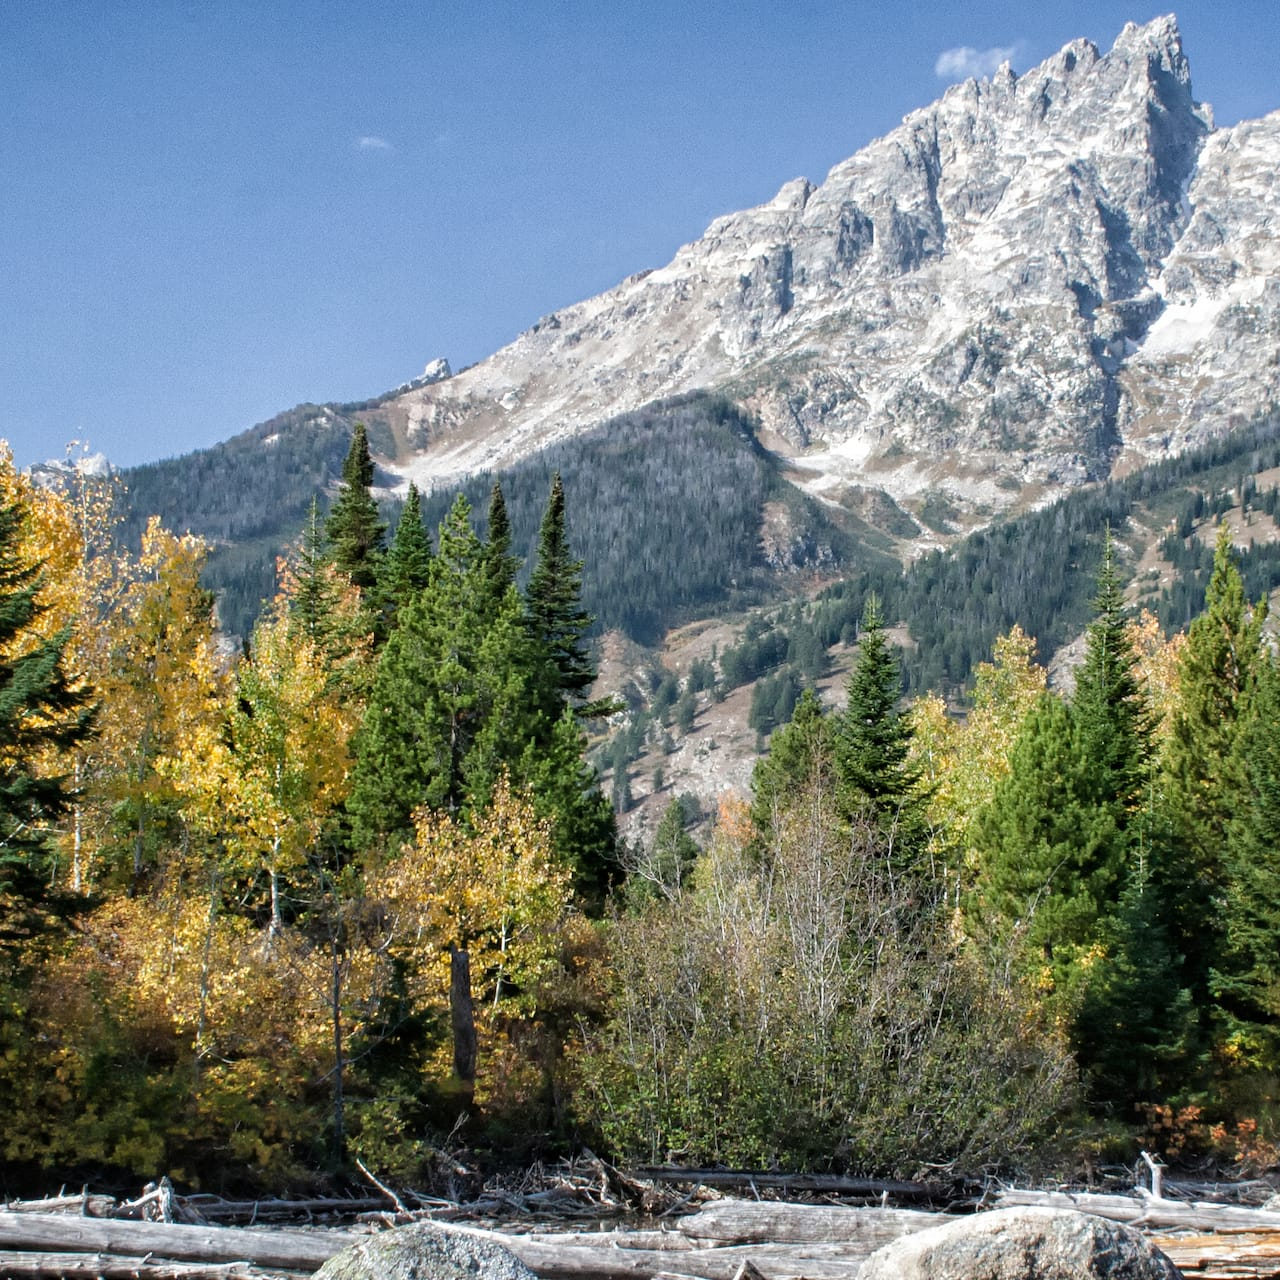 Large mountains stand high above a tree line on a river bank